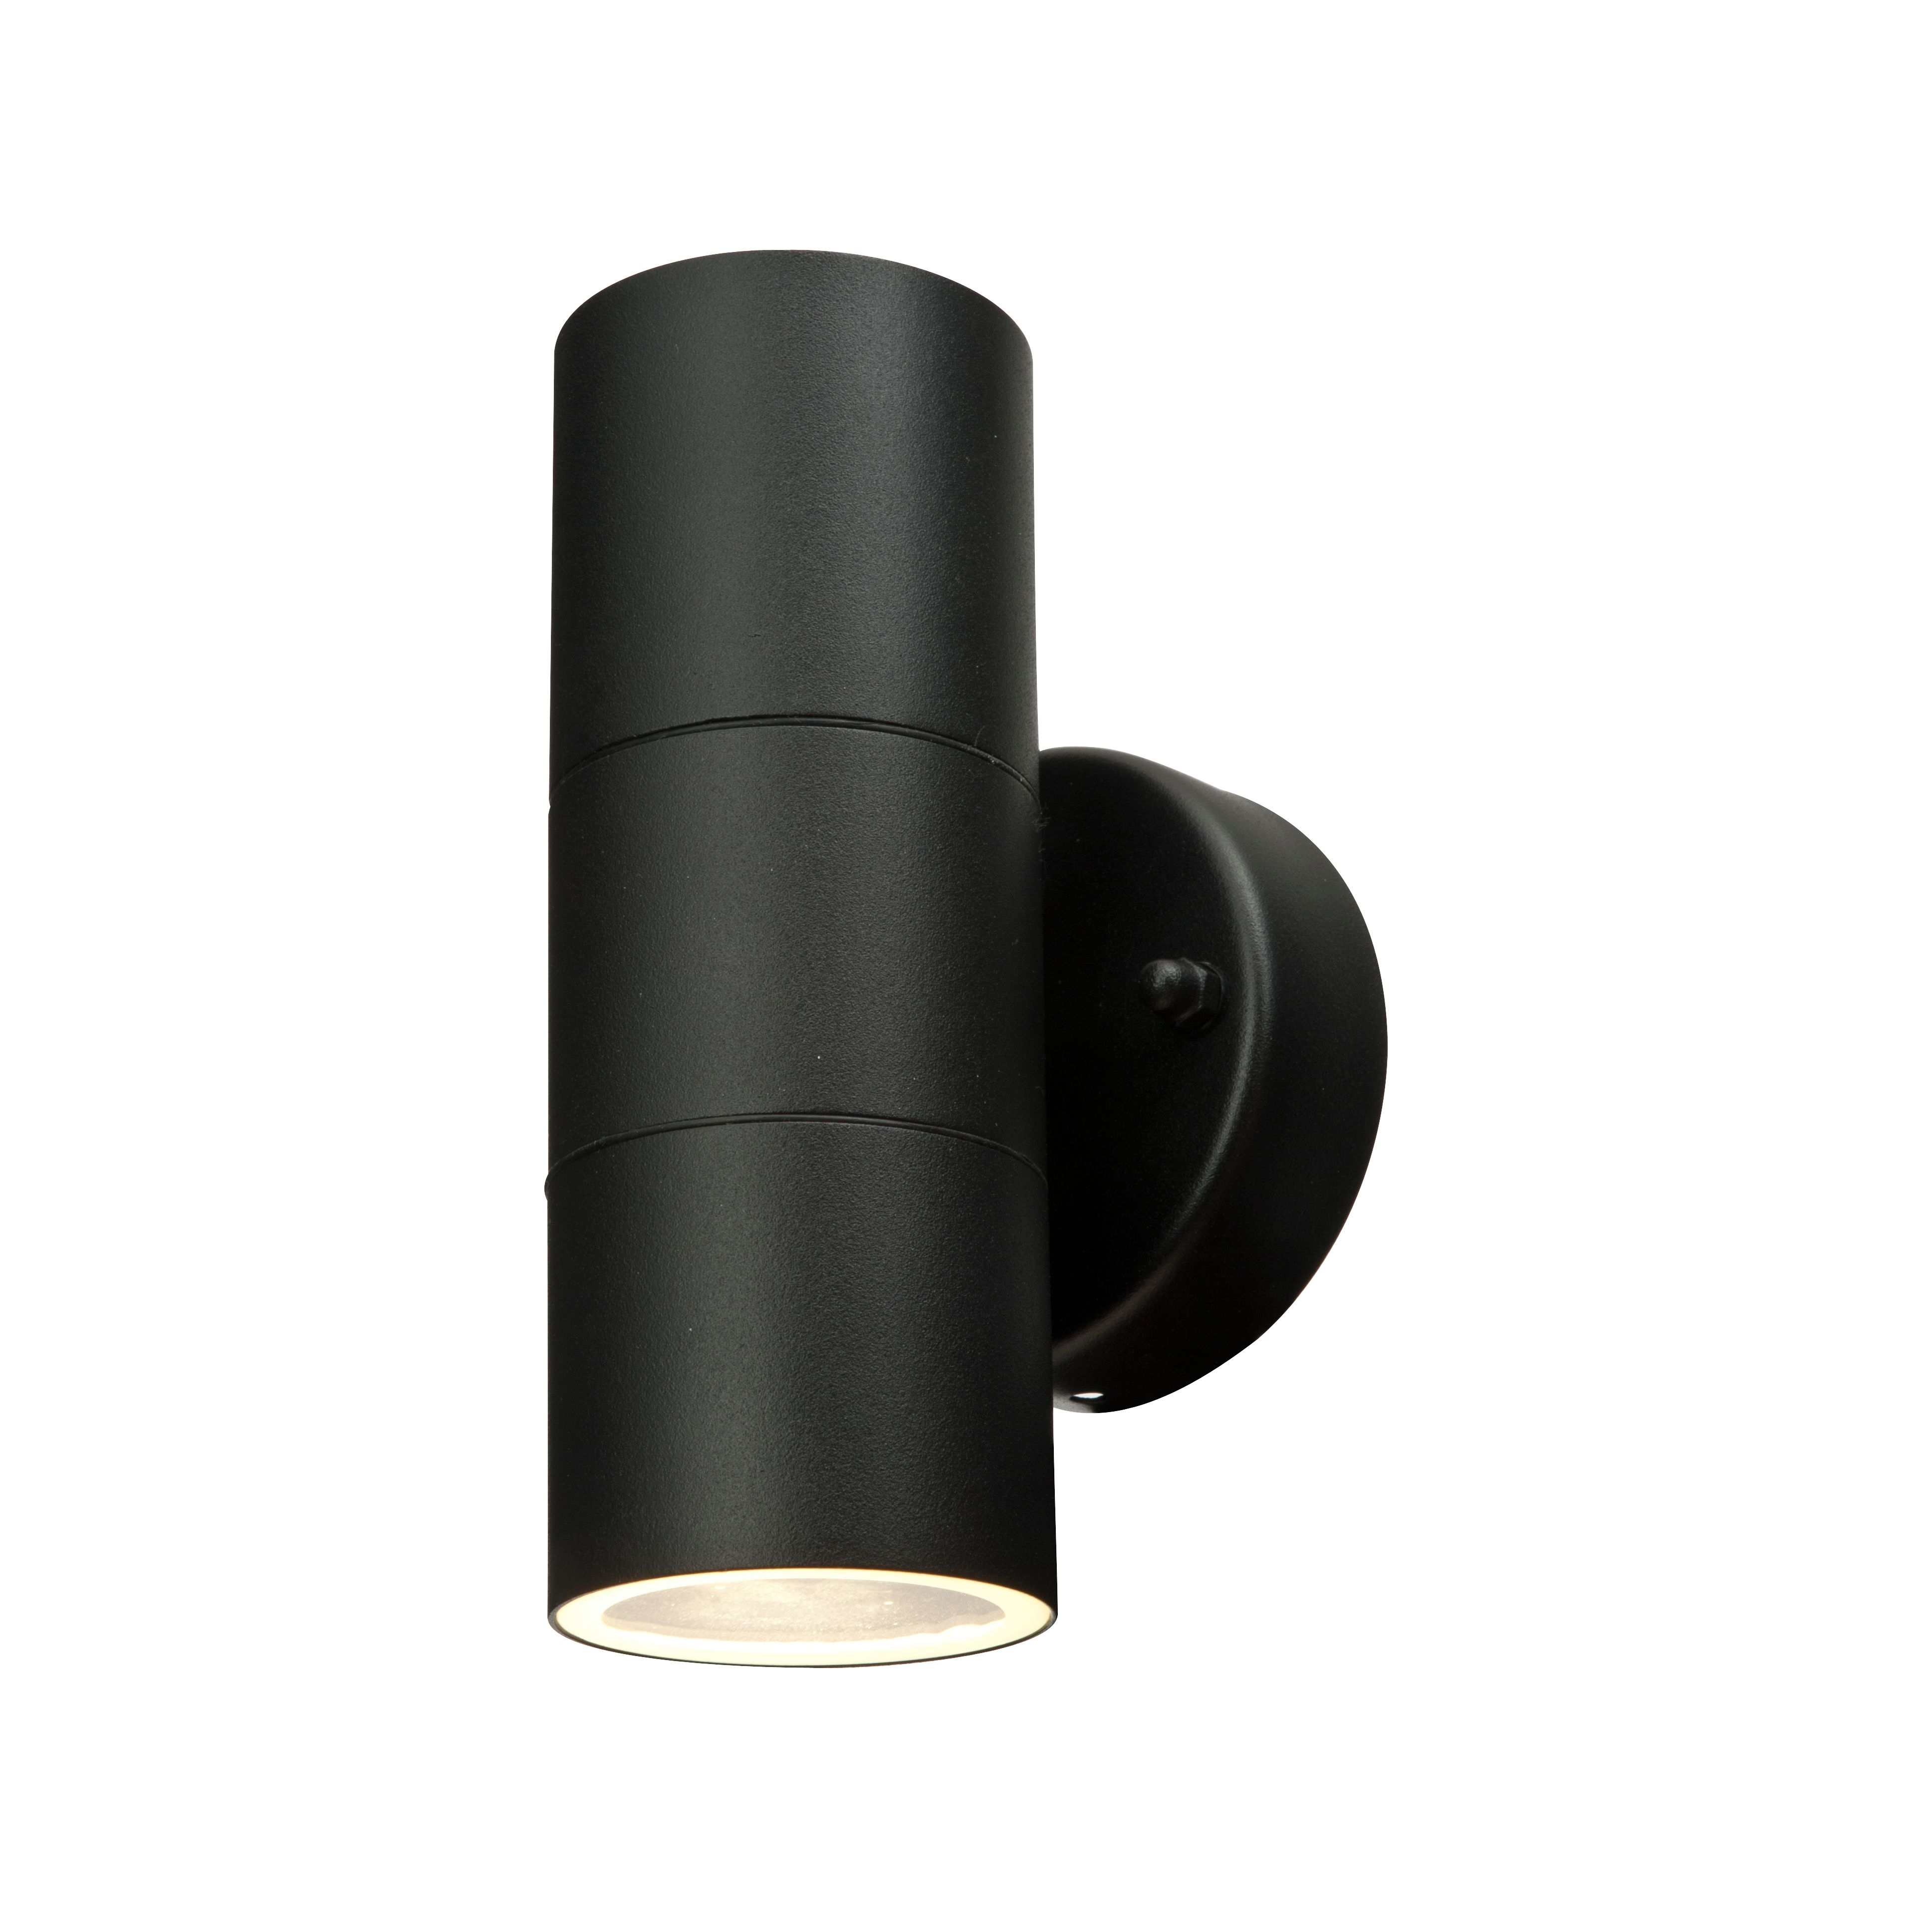 Blooma Somnus Black Mains Powered External Up & Down Wall Light For Best And Newest Diy Outdoor Wall Lights (Gallery 13 of 20)